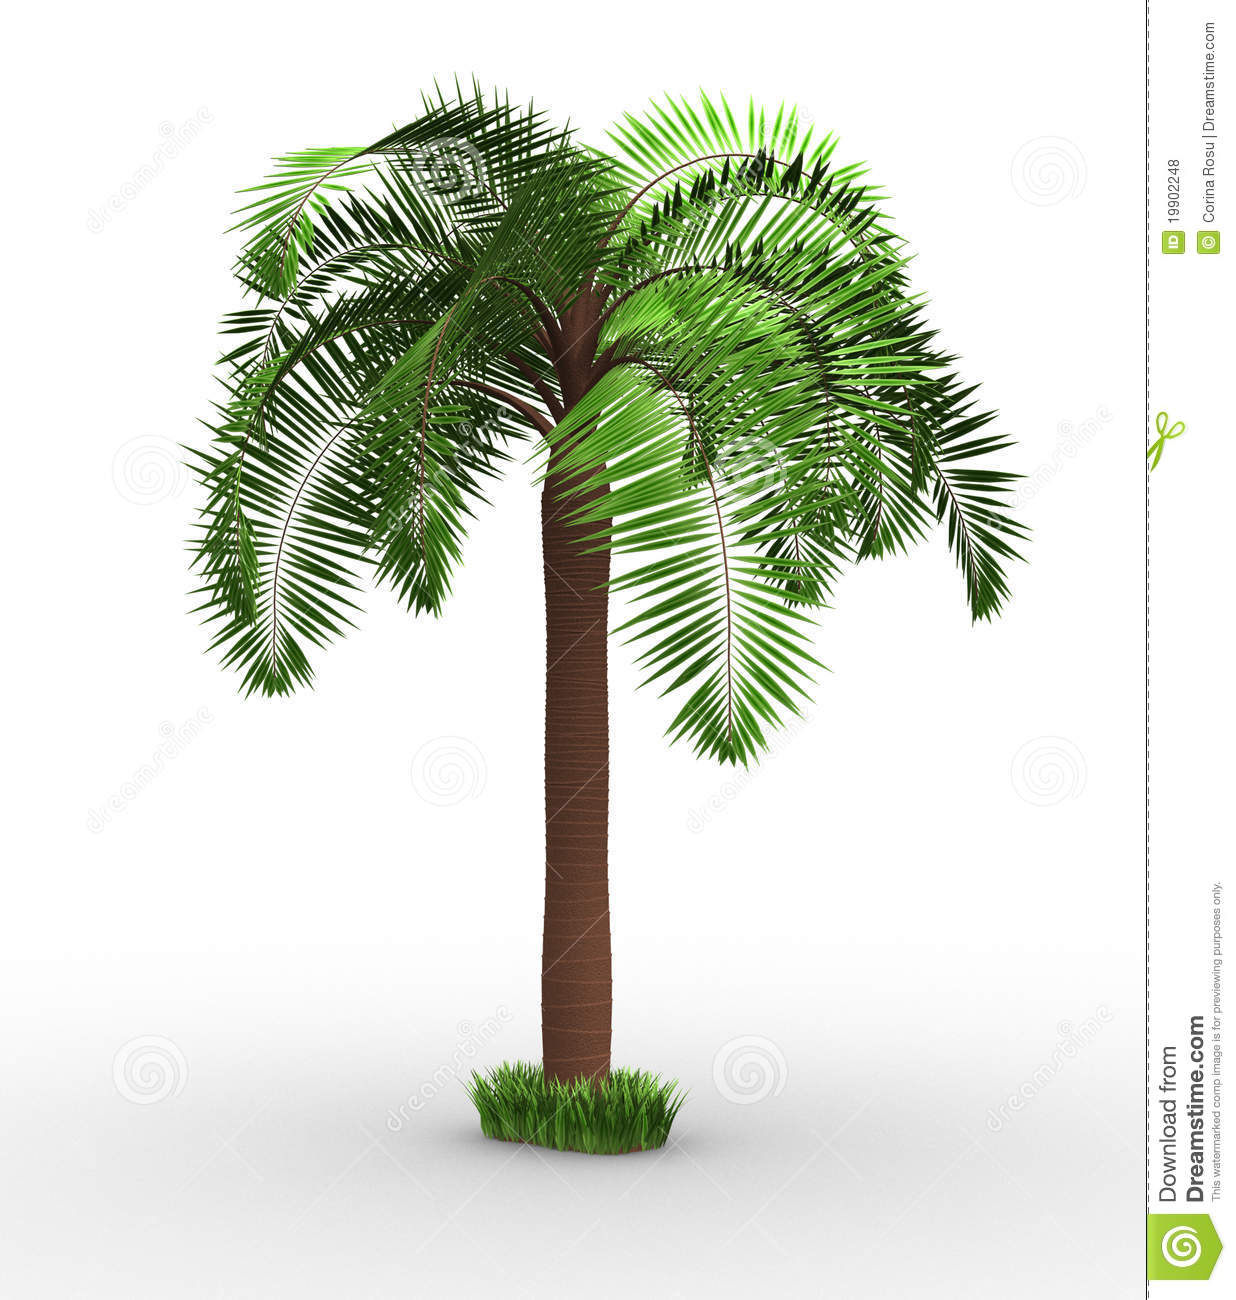 Palm-tree Royalty Free Stock Photos - Image: 19902248 - photo#32